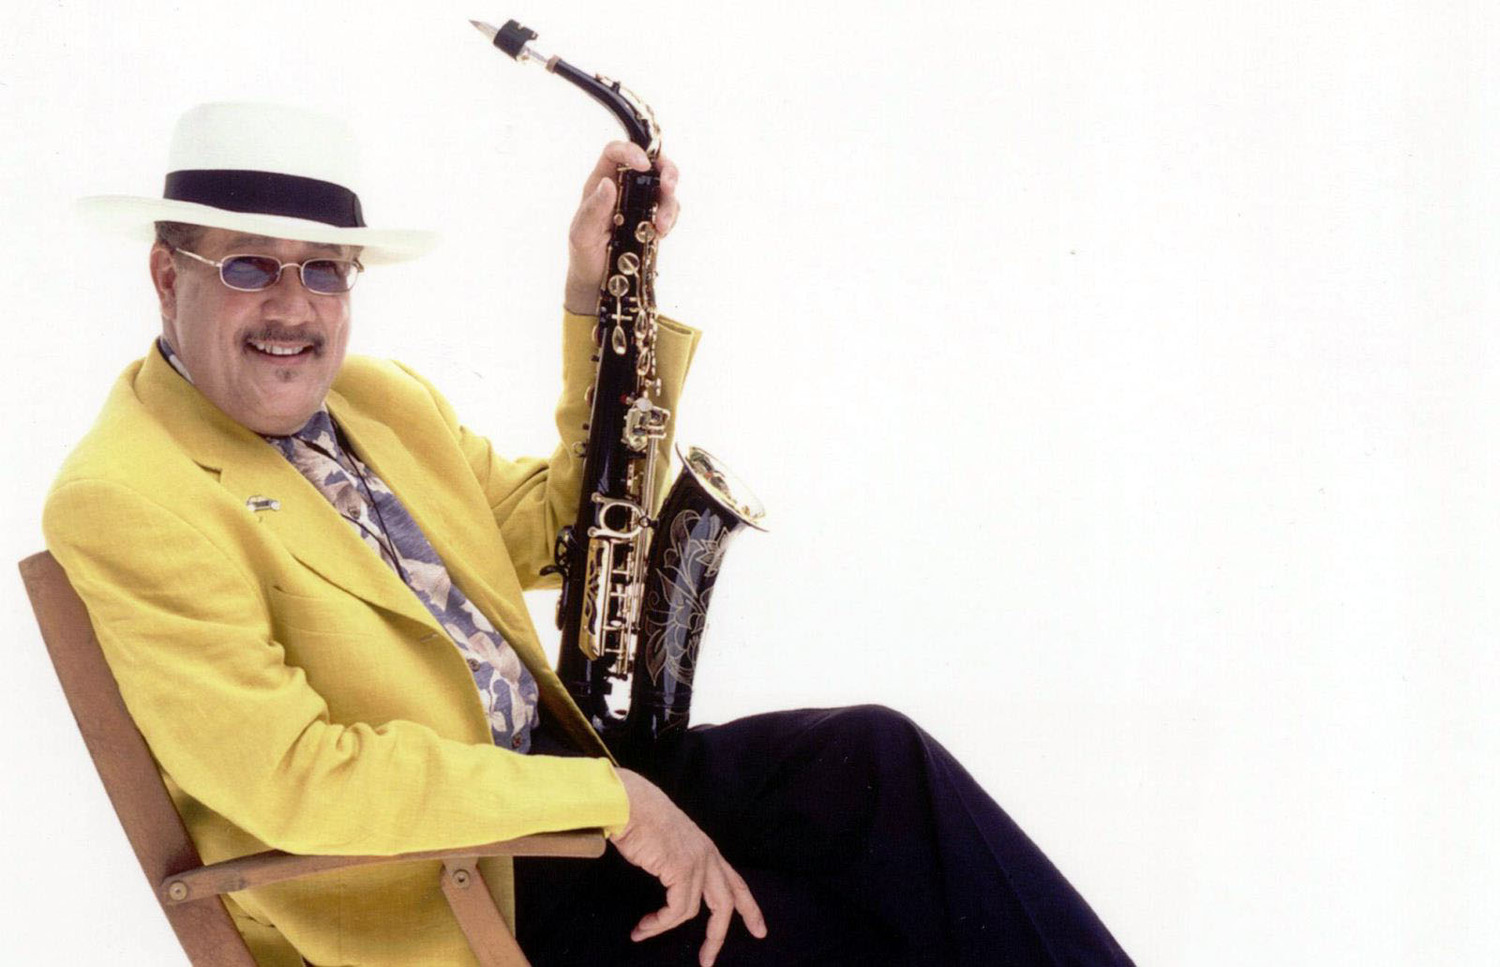 Caption: Paquito D'Rivera